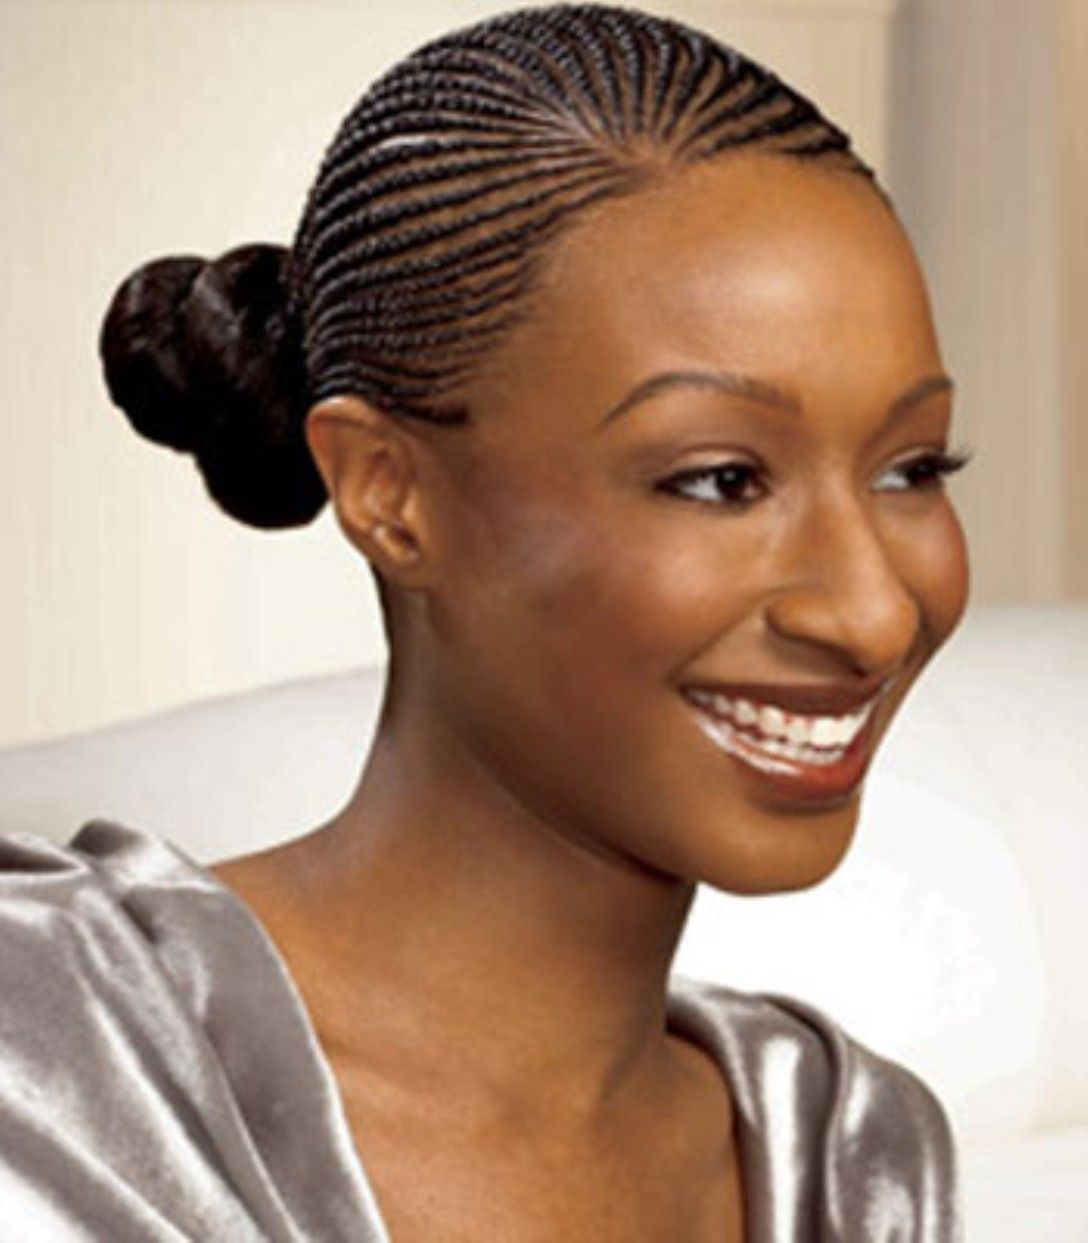 African makeup african hair african goddess african style african - Best African Braids Hairstyle You Can Try Now